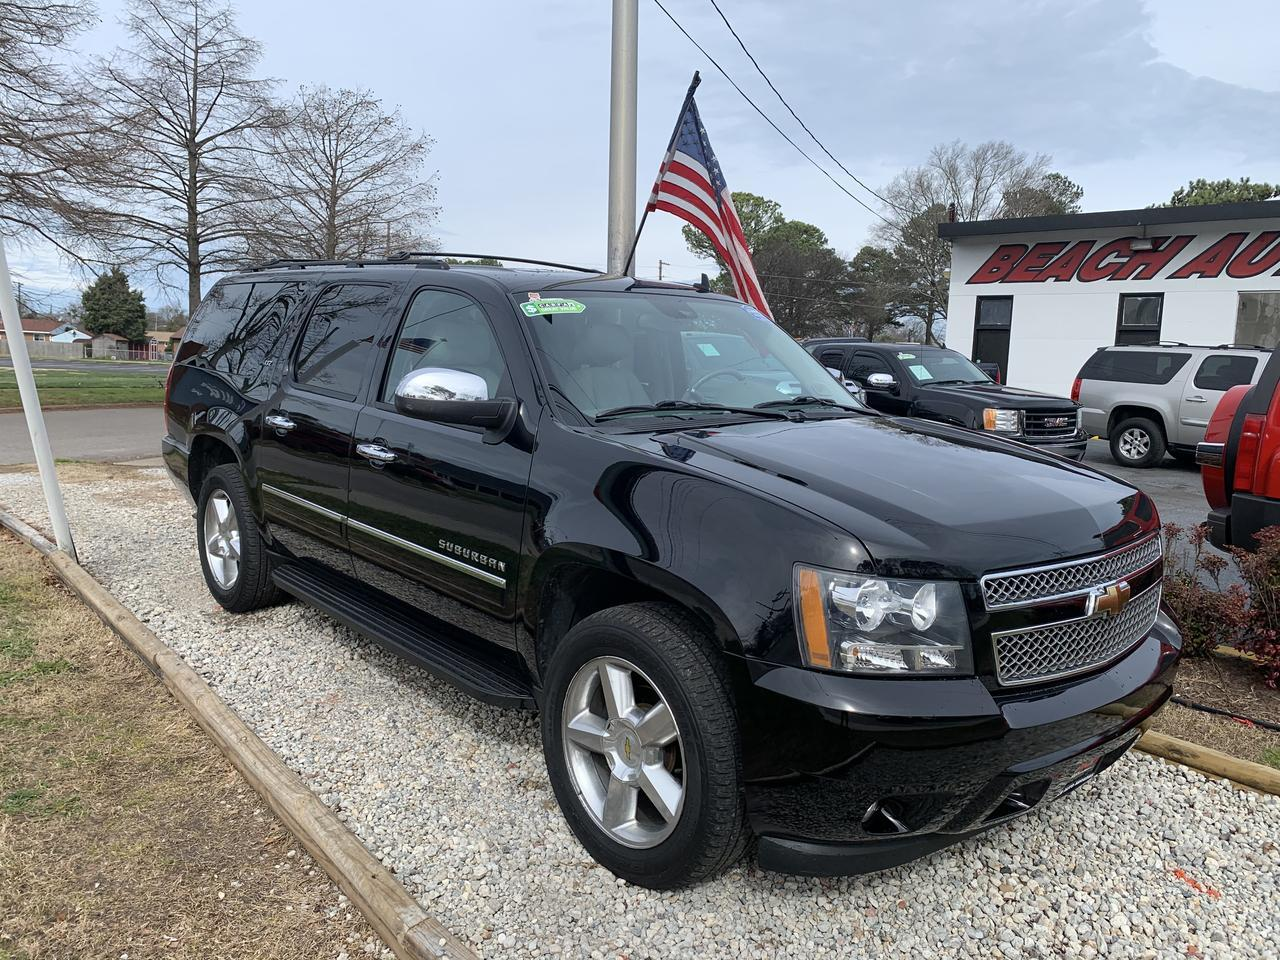 2011 CHEVROLET SUBURBAN LTZ 4X4, WARRANTY, LEATHER, SUNROOF, HEATED/COOLED SEATS, 3RD ROW, DVD PLAYER, NAV, 1 OWNER! Norfolk VA